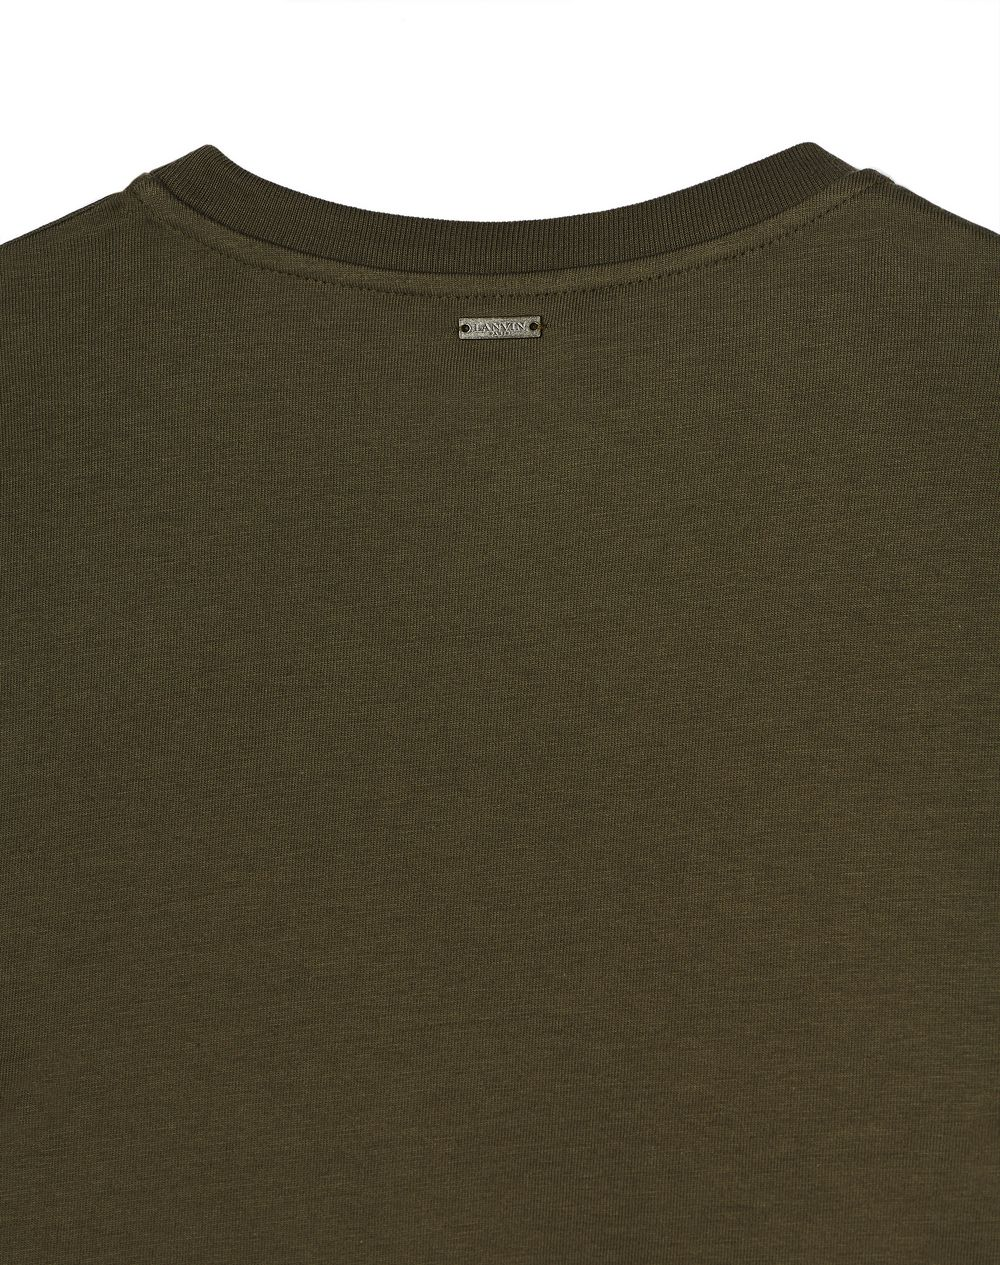 LONG-SLEEVED KHAKI T-SHIRT  - Lanvin